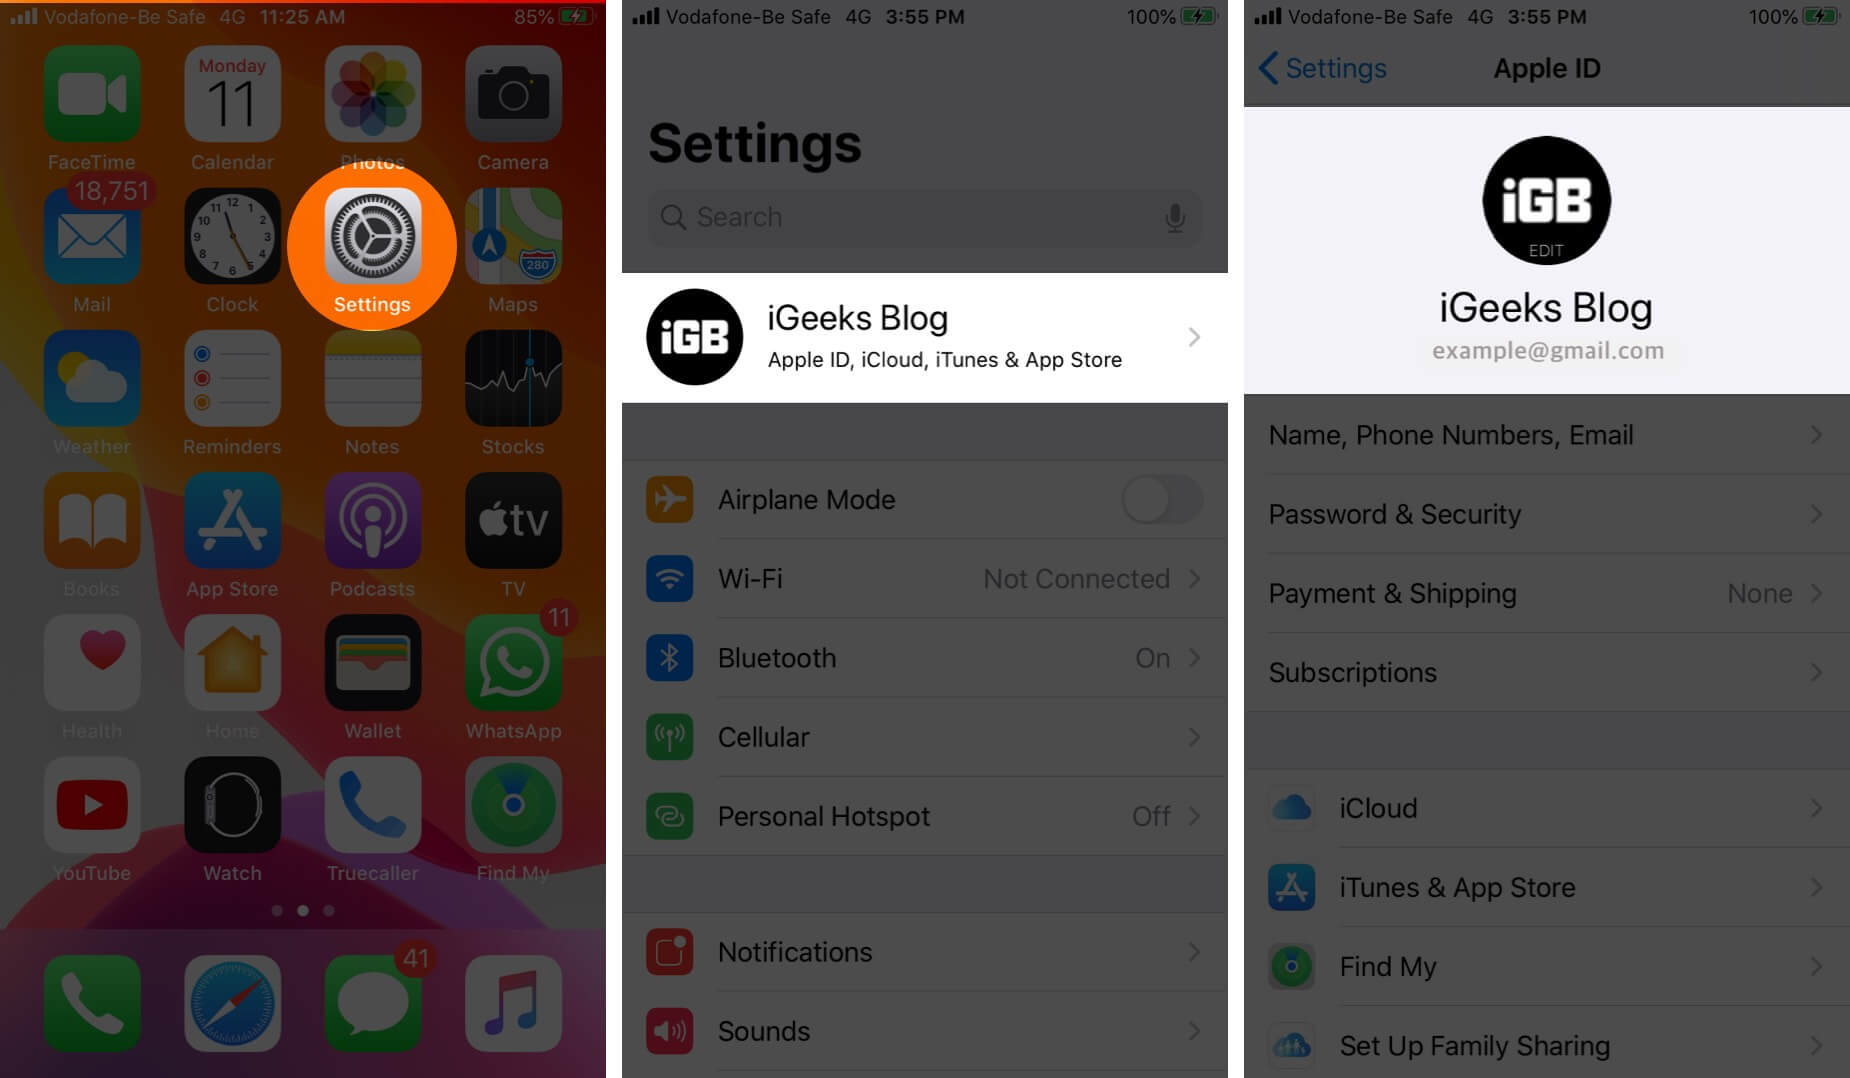 Open Settings and Tap on Profile to View Apple ID on iPhone